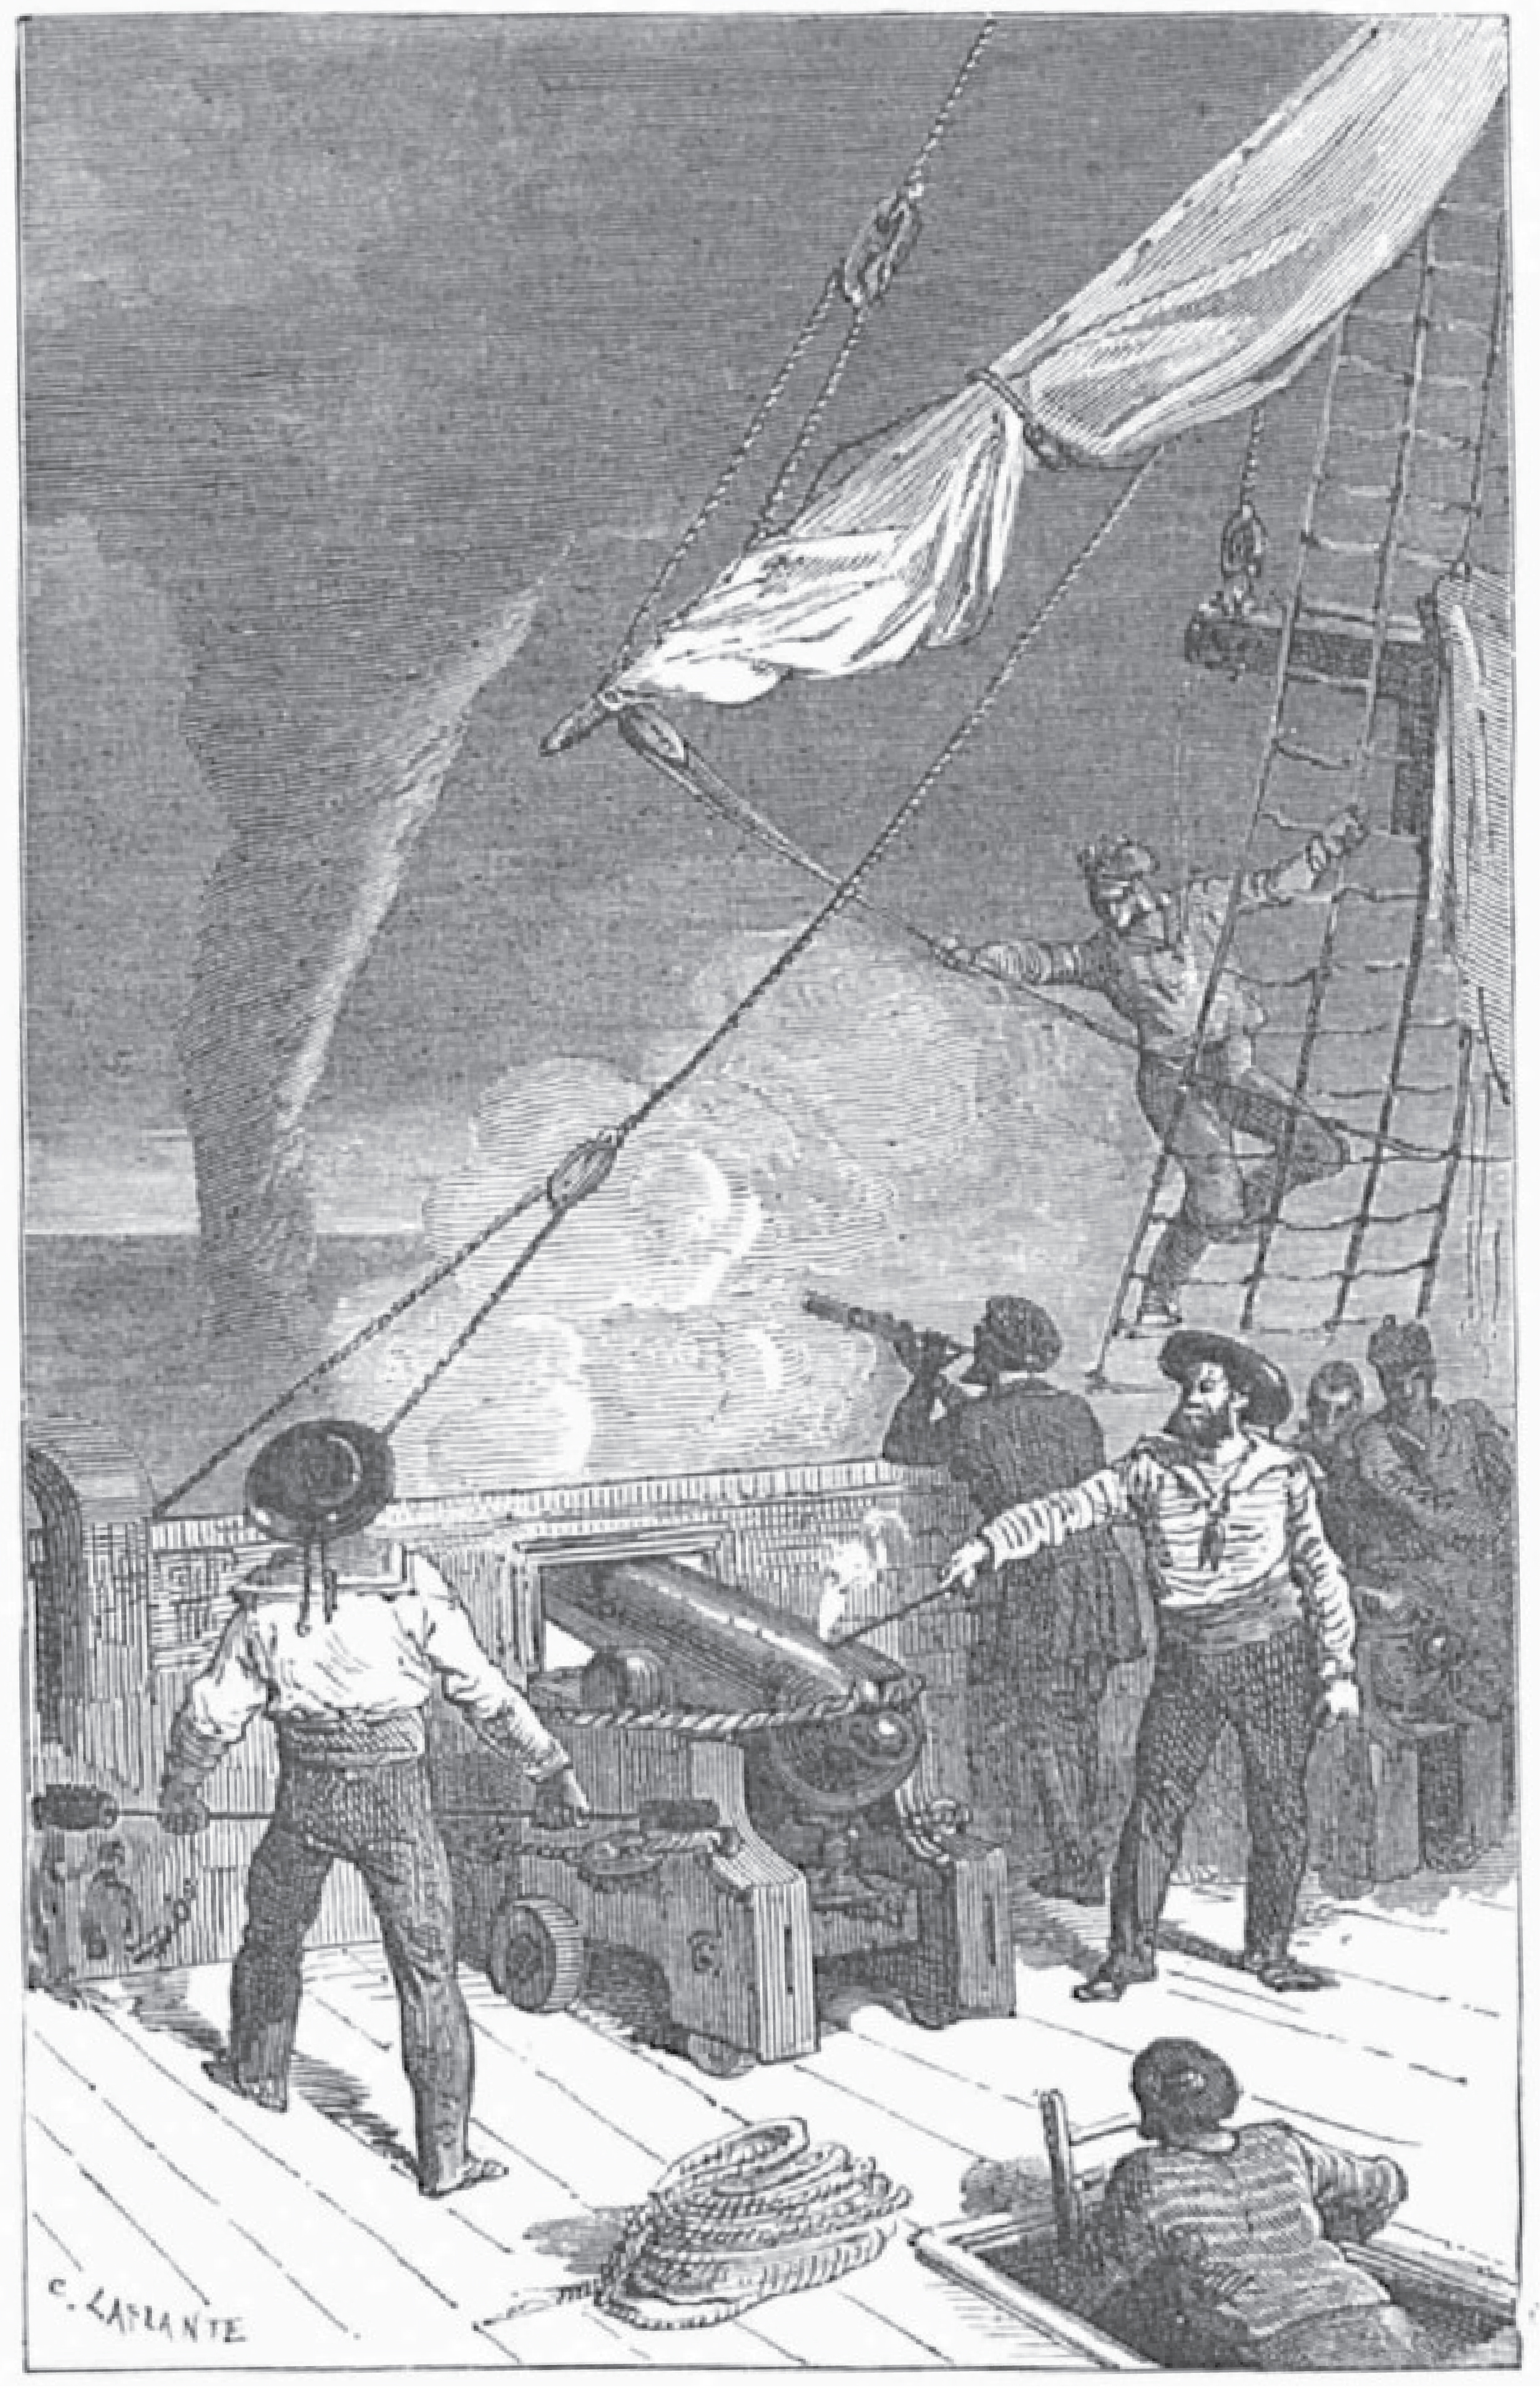 Captain Napier firing a cannon to break a waterspout (May1783).  source: source: de Fonvielle, Wilfrid, 1866:  Eclairs et tonnerres (Thunder and Lightning)  [illustrated  with 39 vignettes by E. Bayard and H. Clerget] Hachette, Paris, 318 pp. (via  http://gallica.bnf.fr/ , 1885 edition)